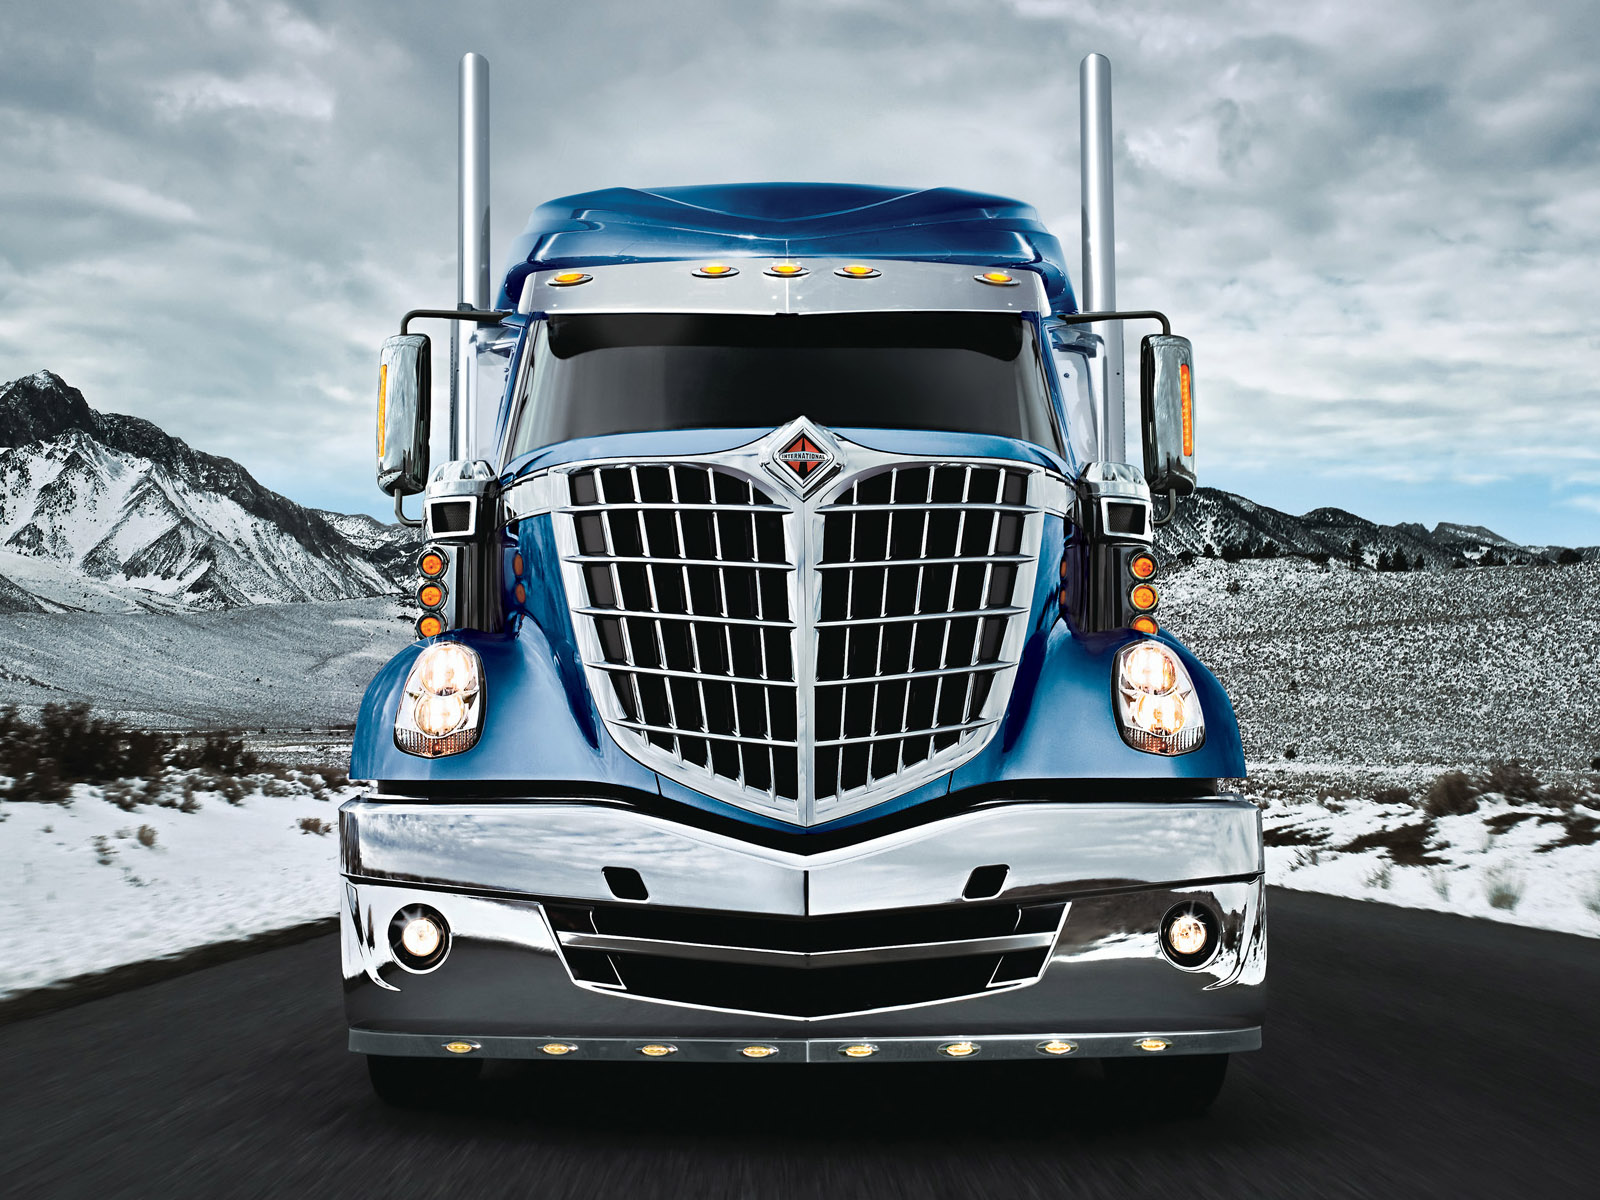 hd semi truck backgrounds page 3 of 3 wallpaper